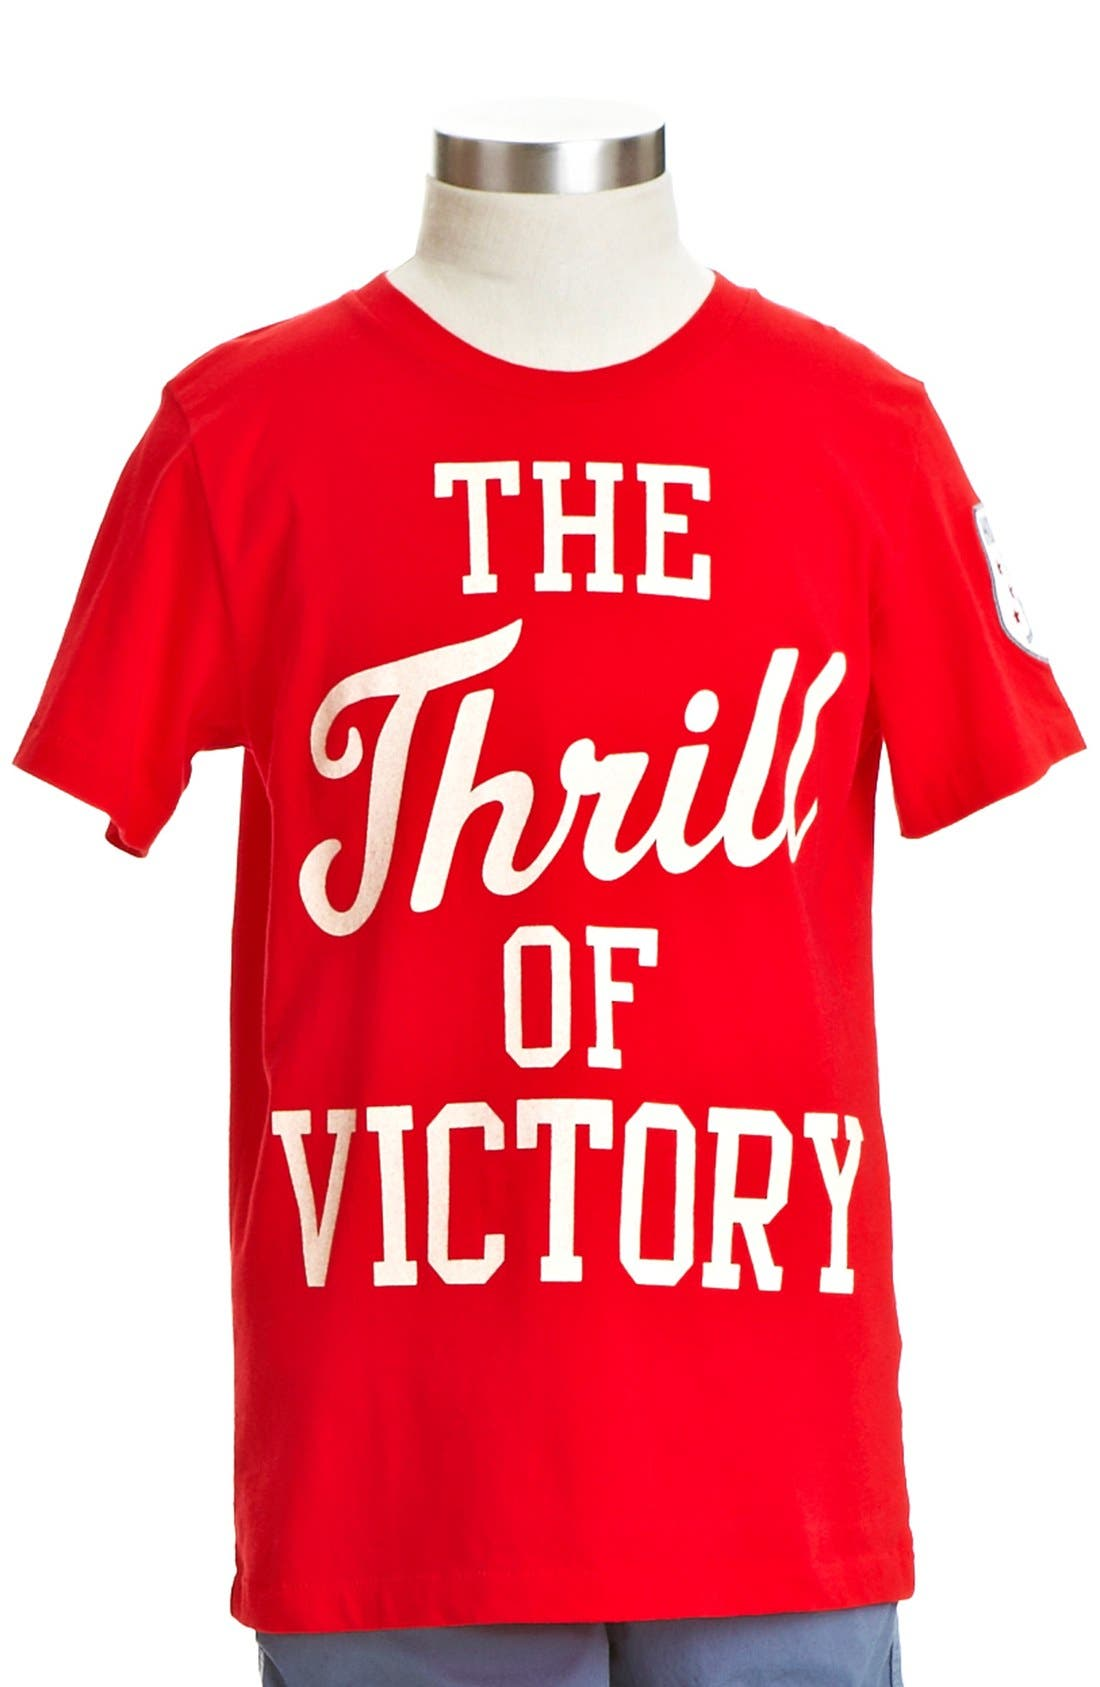 Alternate Image 1 Selected - Peek 'Thrill of Victory' T-Shirt (Toddler Boys, Little Boys & Big Boys)